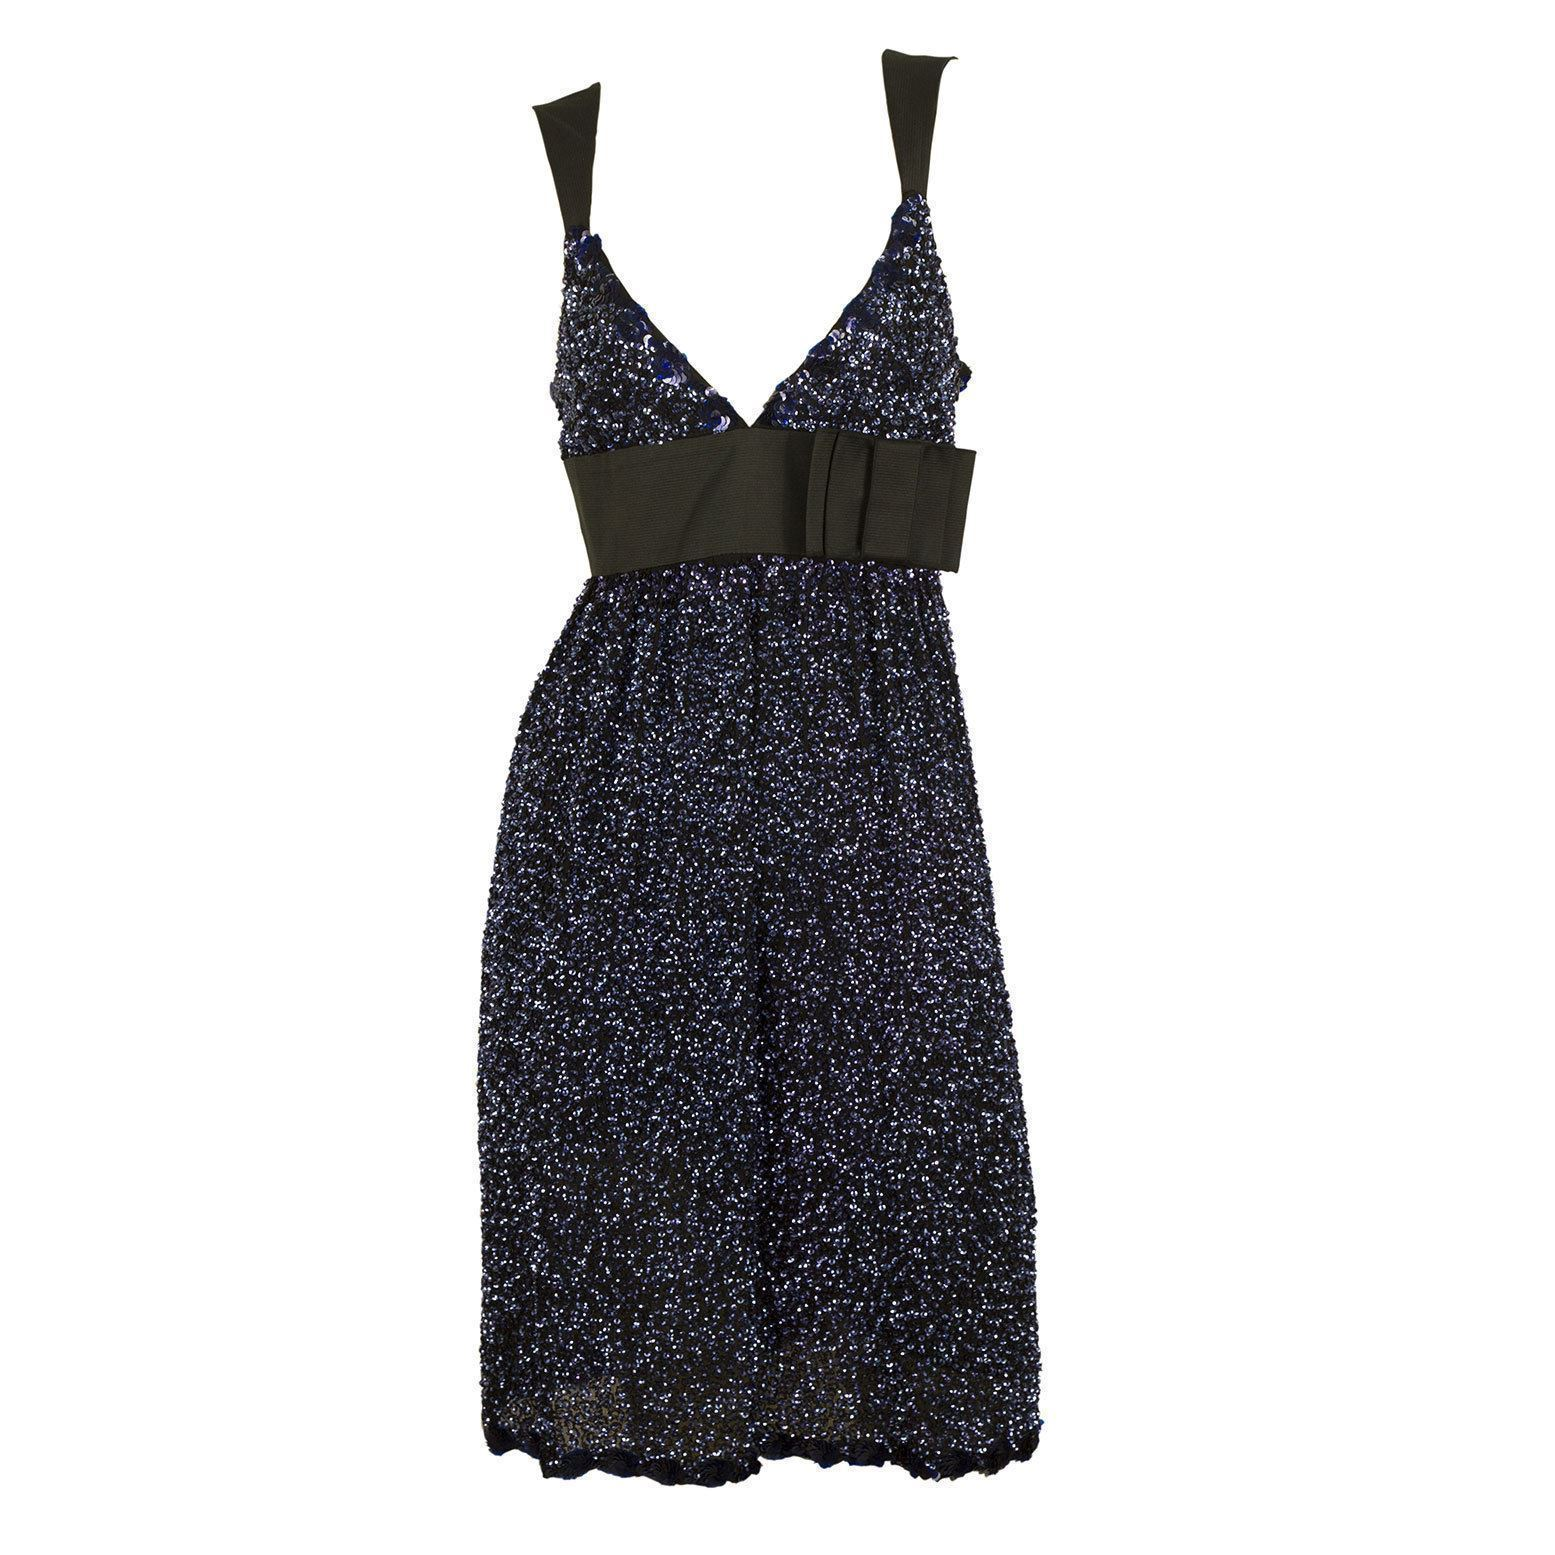 Duyan Midnight Blue Black Fully Sequined Knee Length Bow Dress size 42 It image 3